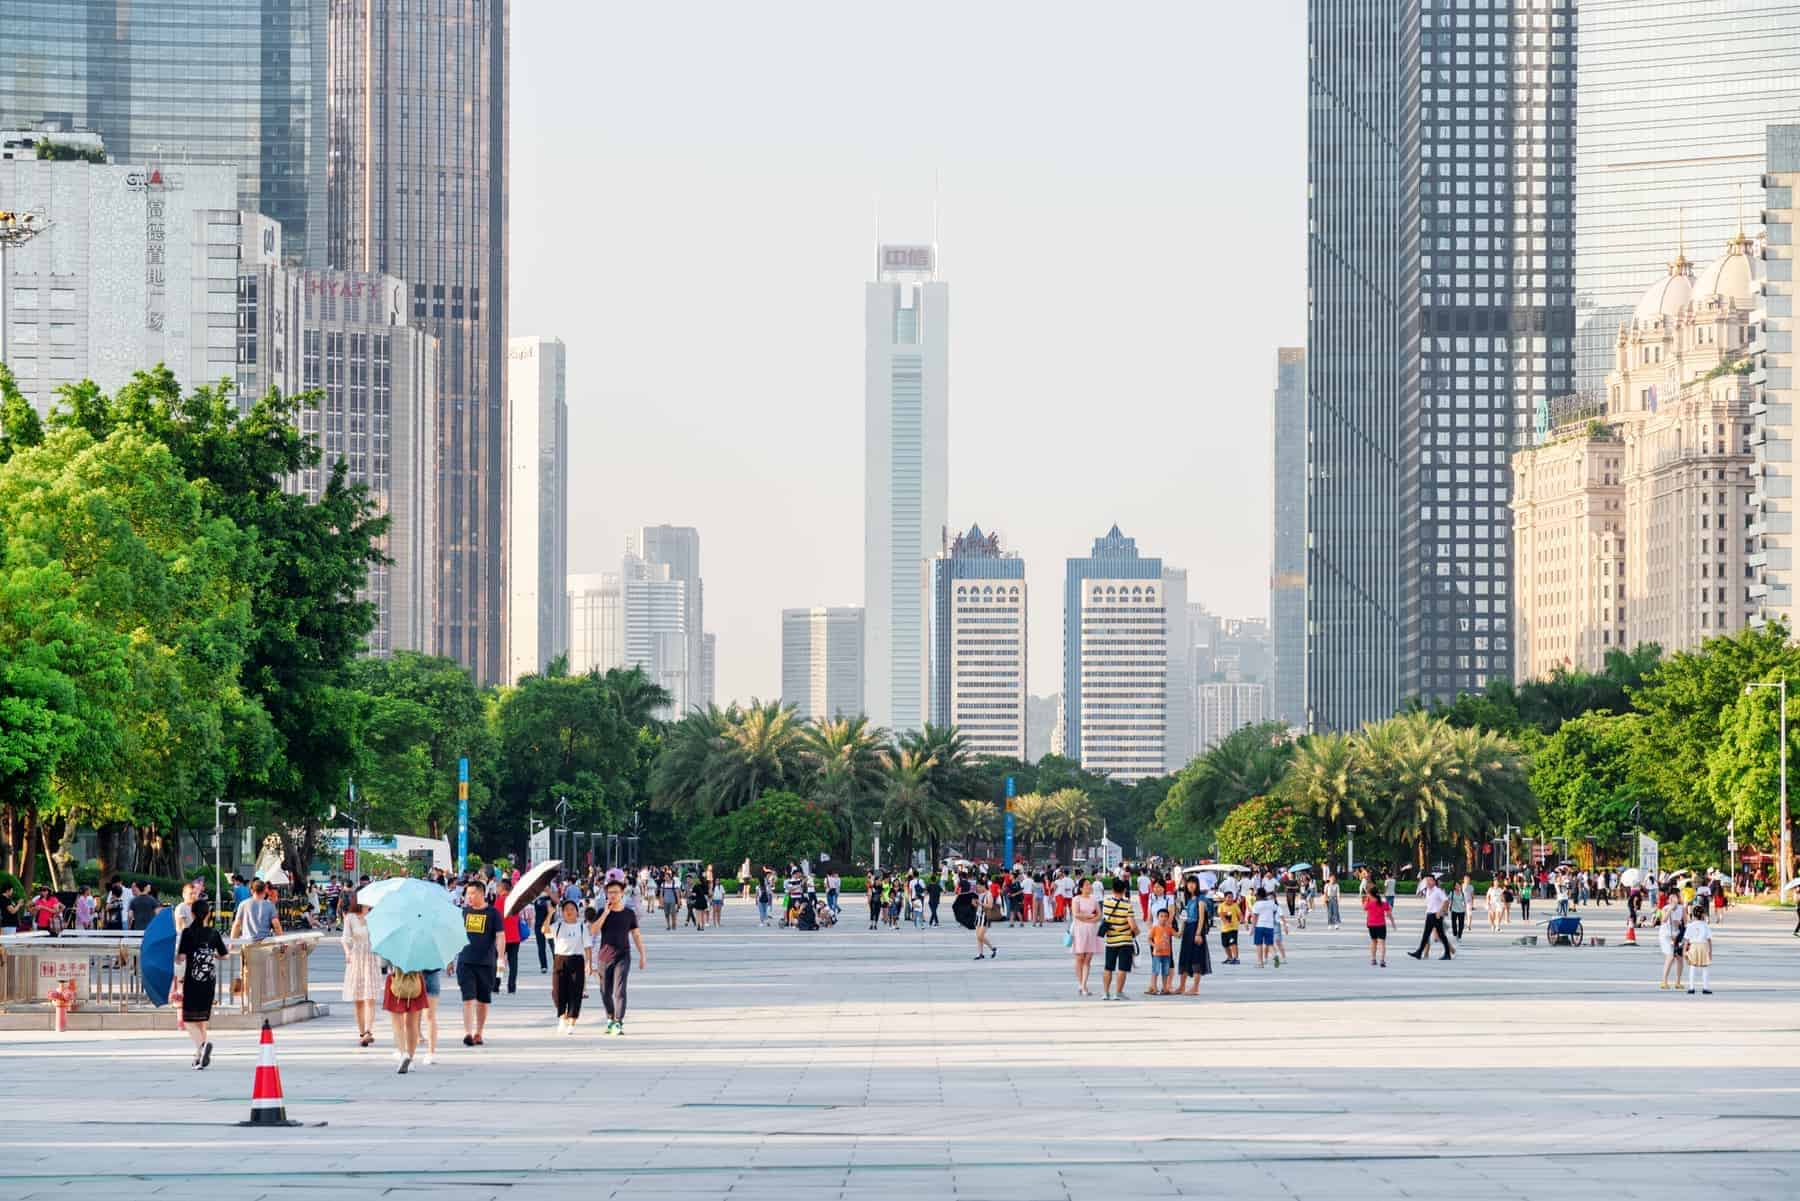 Guangzhou, China - September 16, 2017: Asian tourists walking in a scenic city park among modern buildings in the Tianhe District of the Zhujiang New Town. Guangzhou is a popular tourist destination.